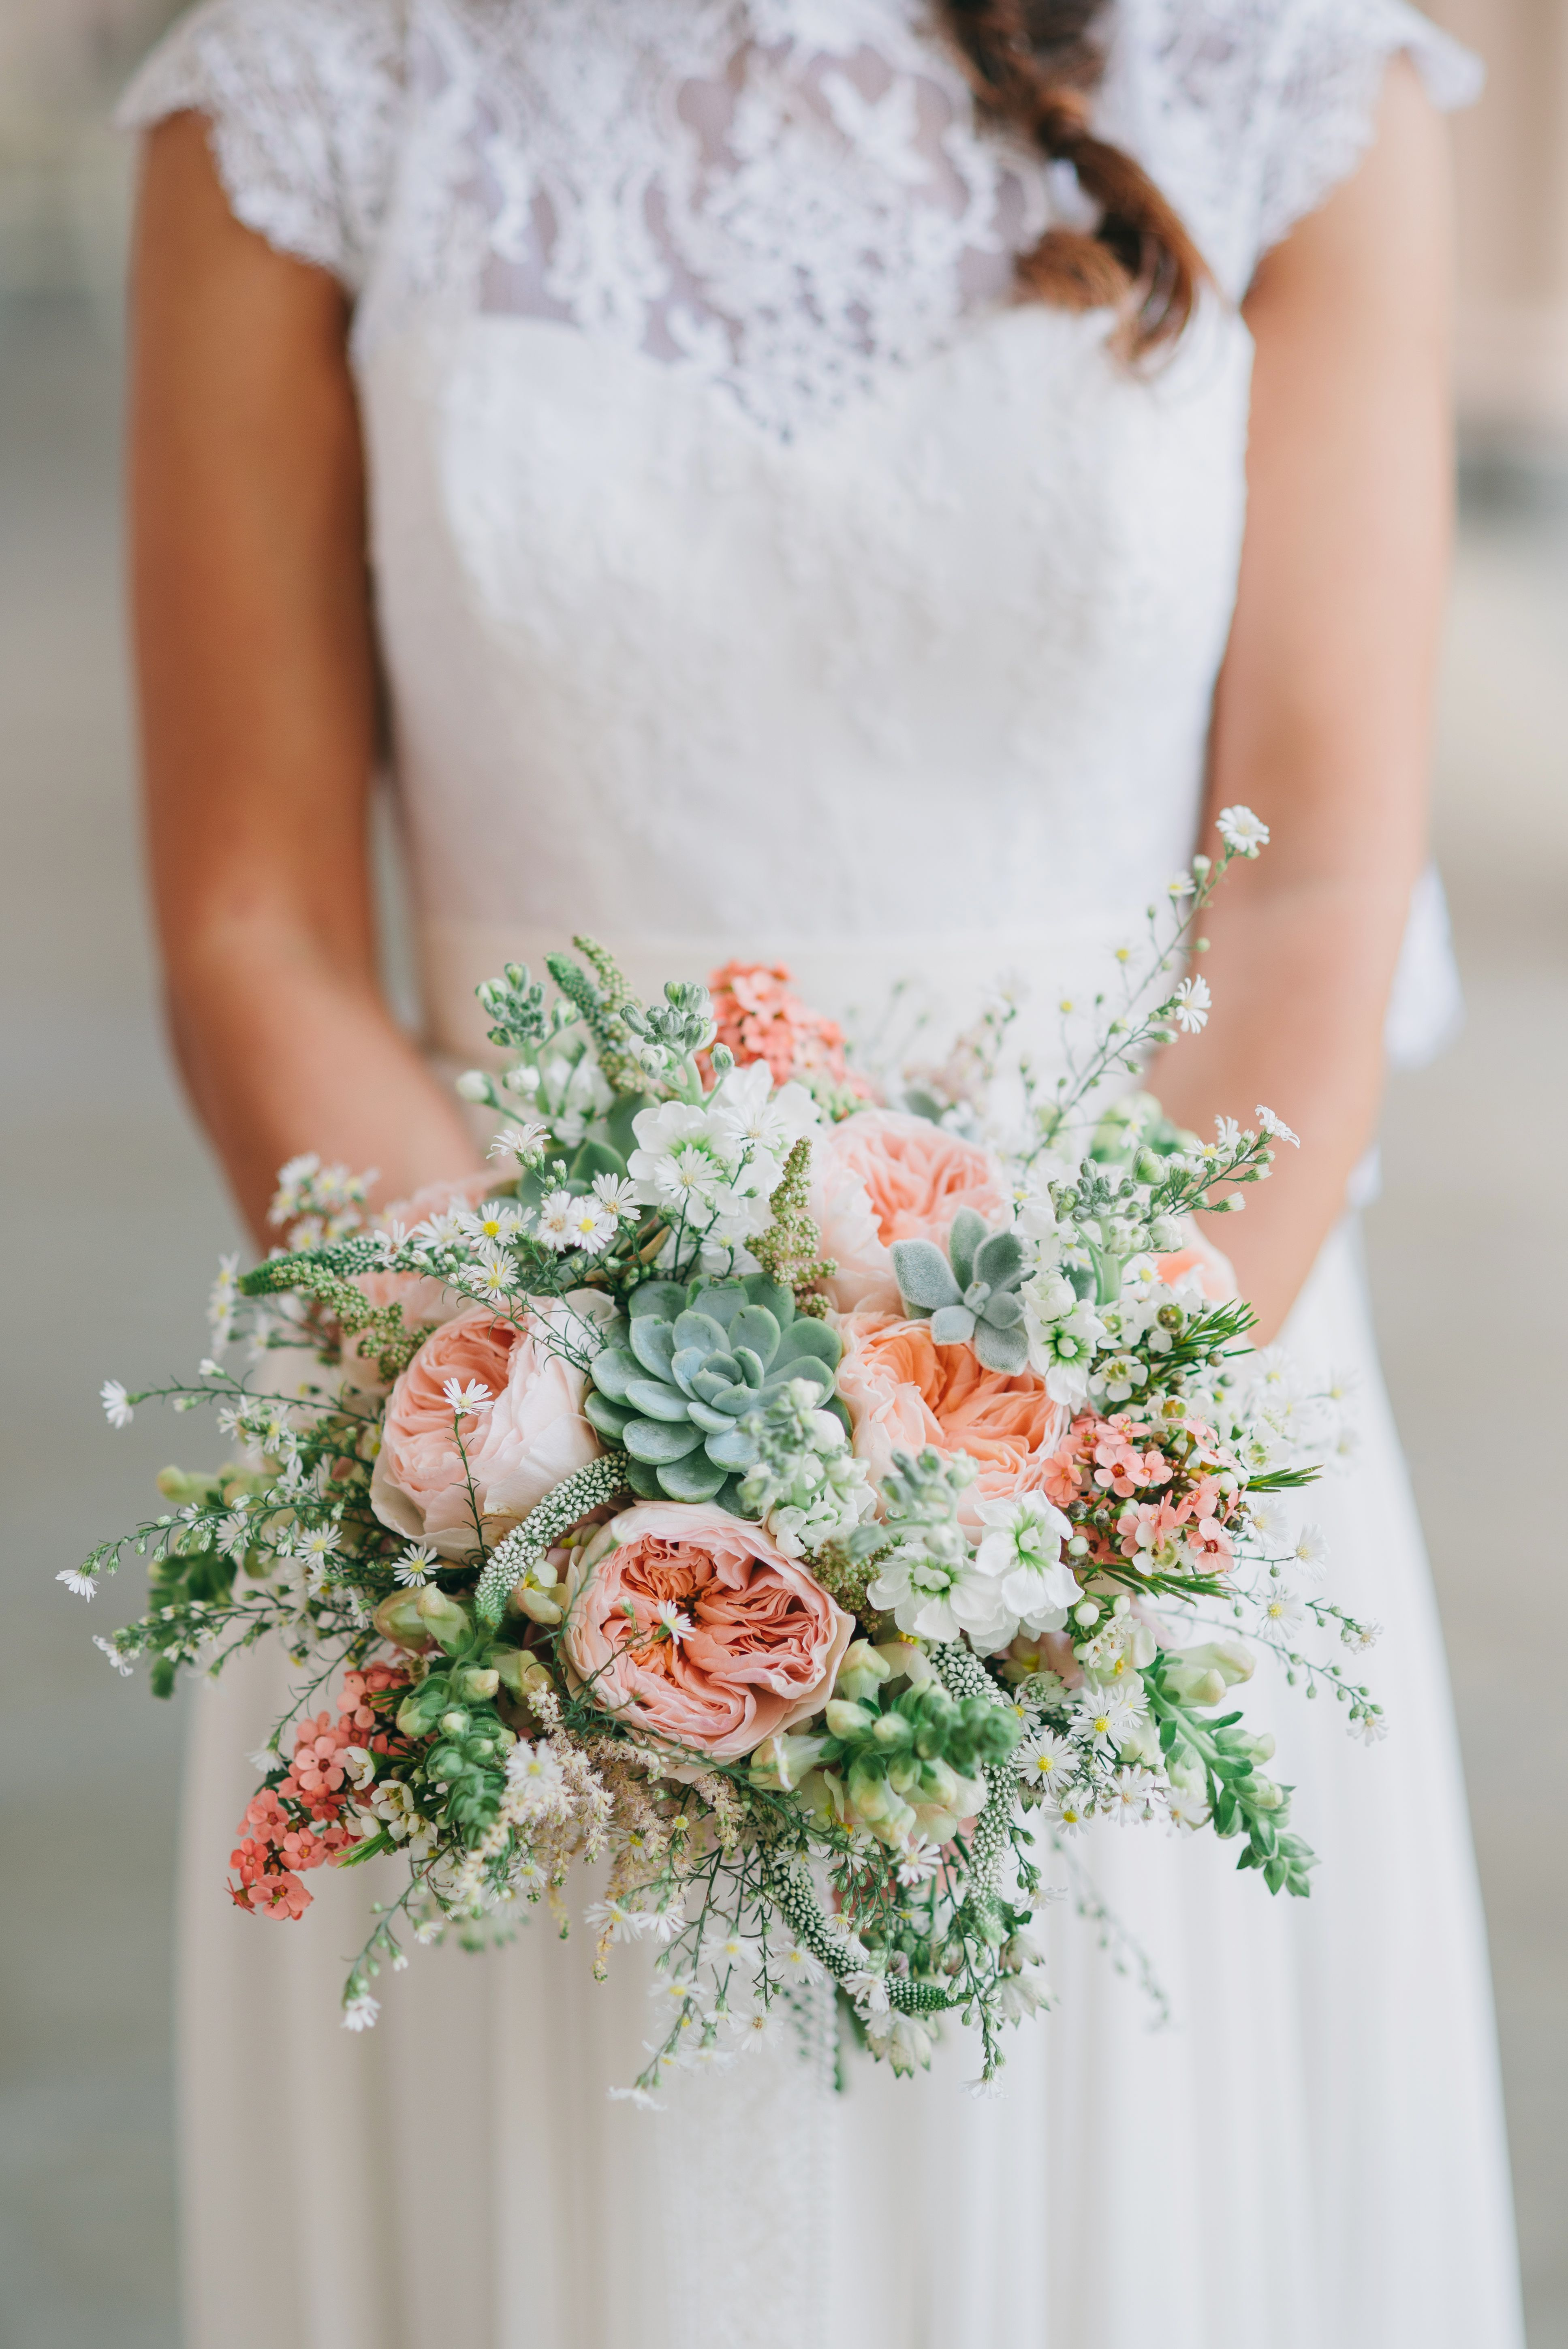 Bouquet Sposa 2019.Boho Chic Bride Bouquet Inspiration Flower Inspiration Boho